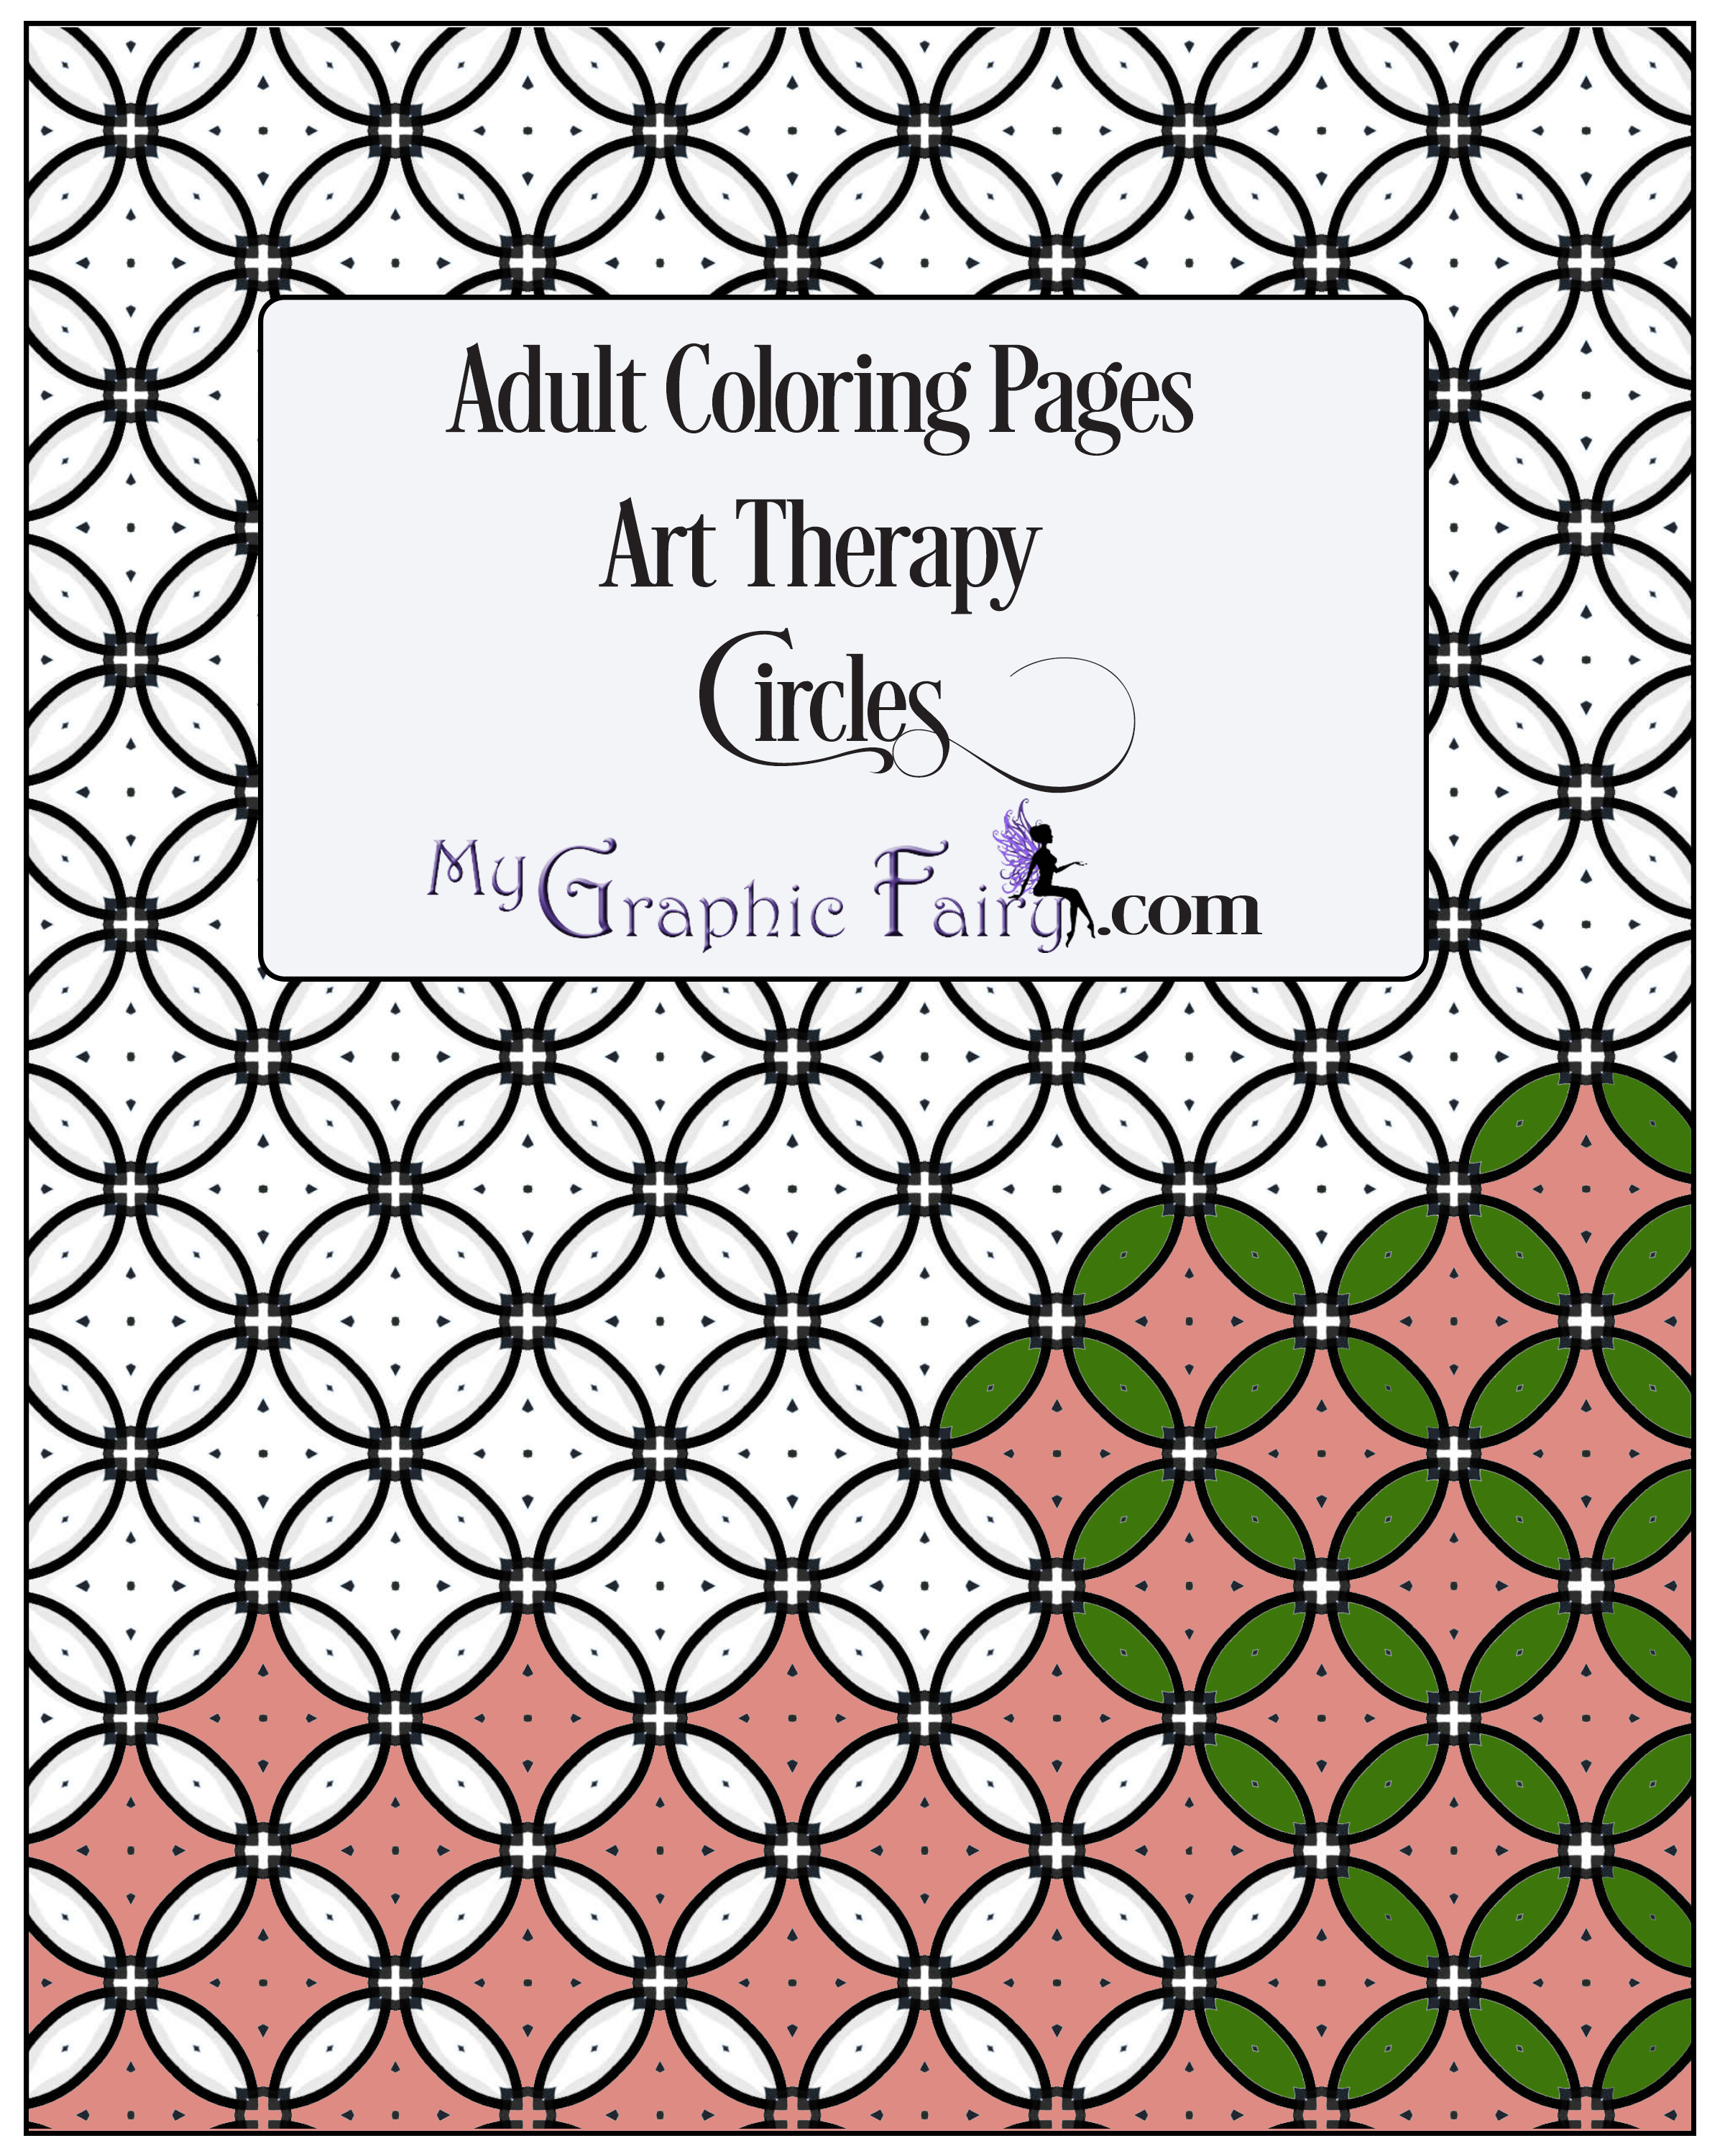 wordpress blog library offers adult coloring pages